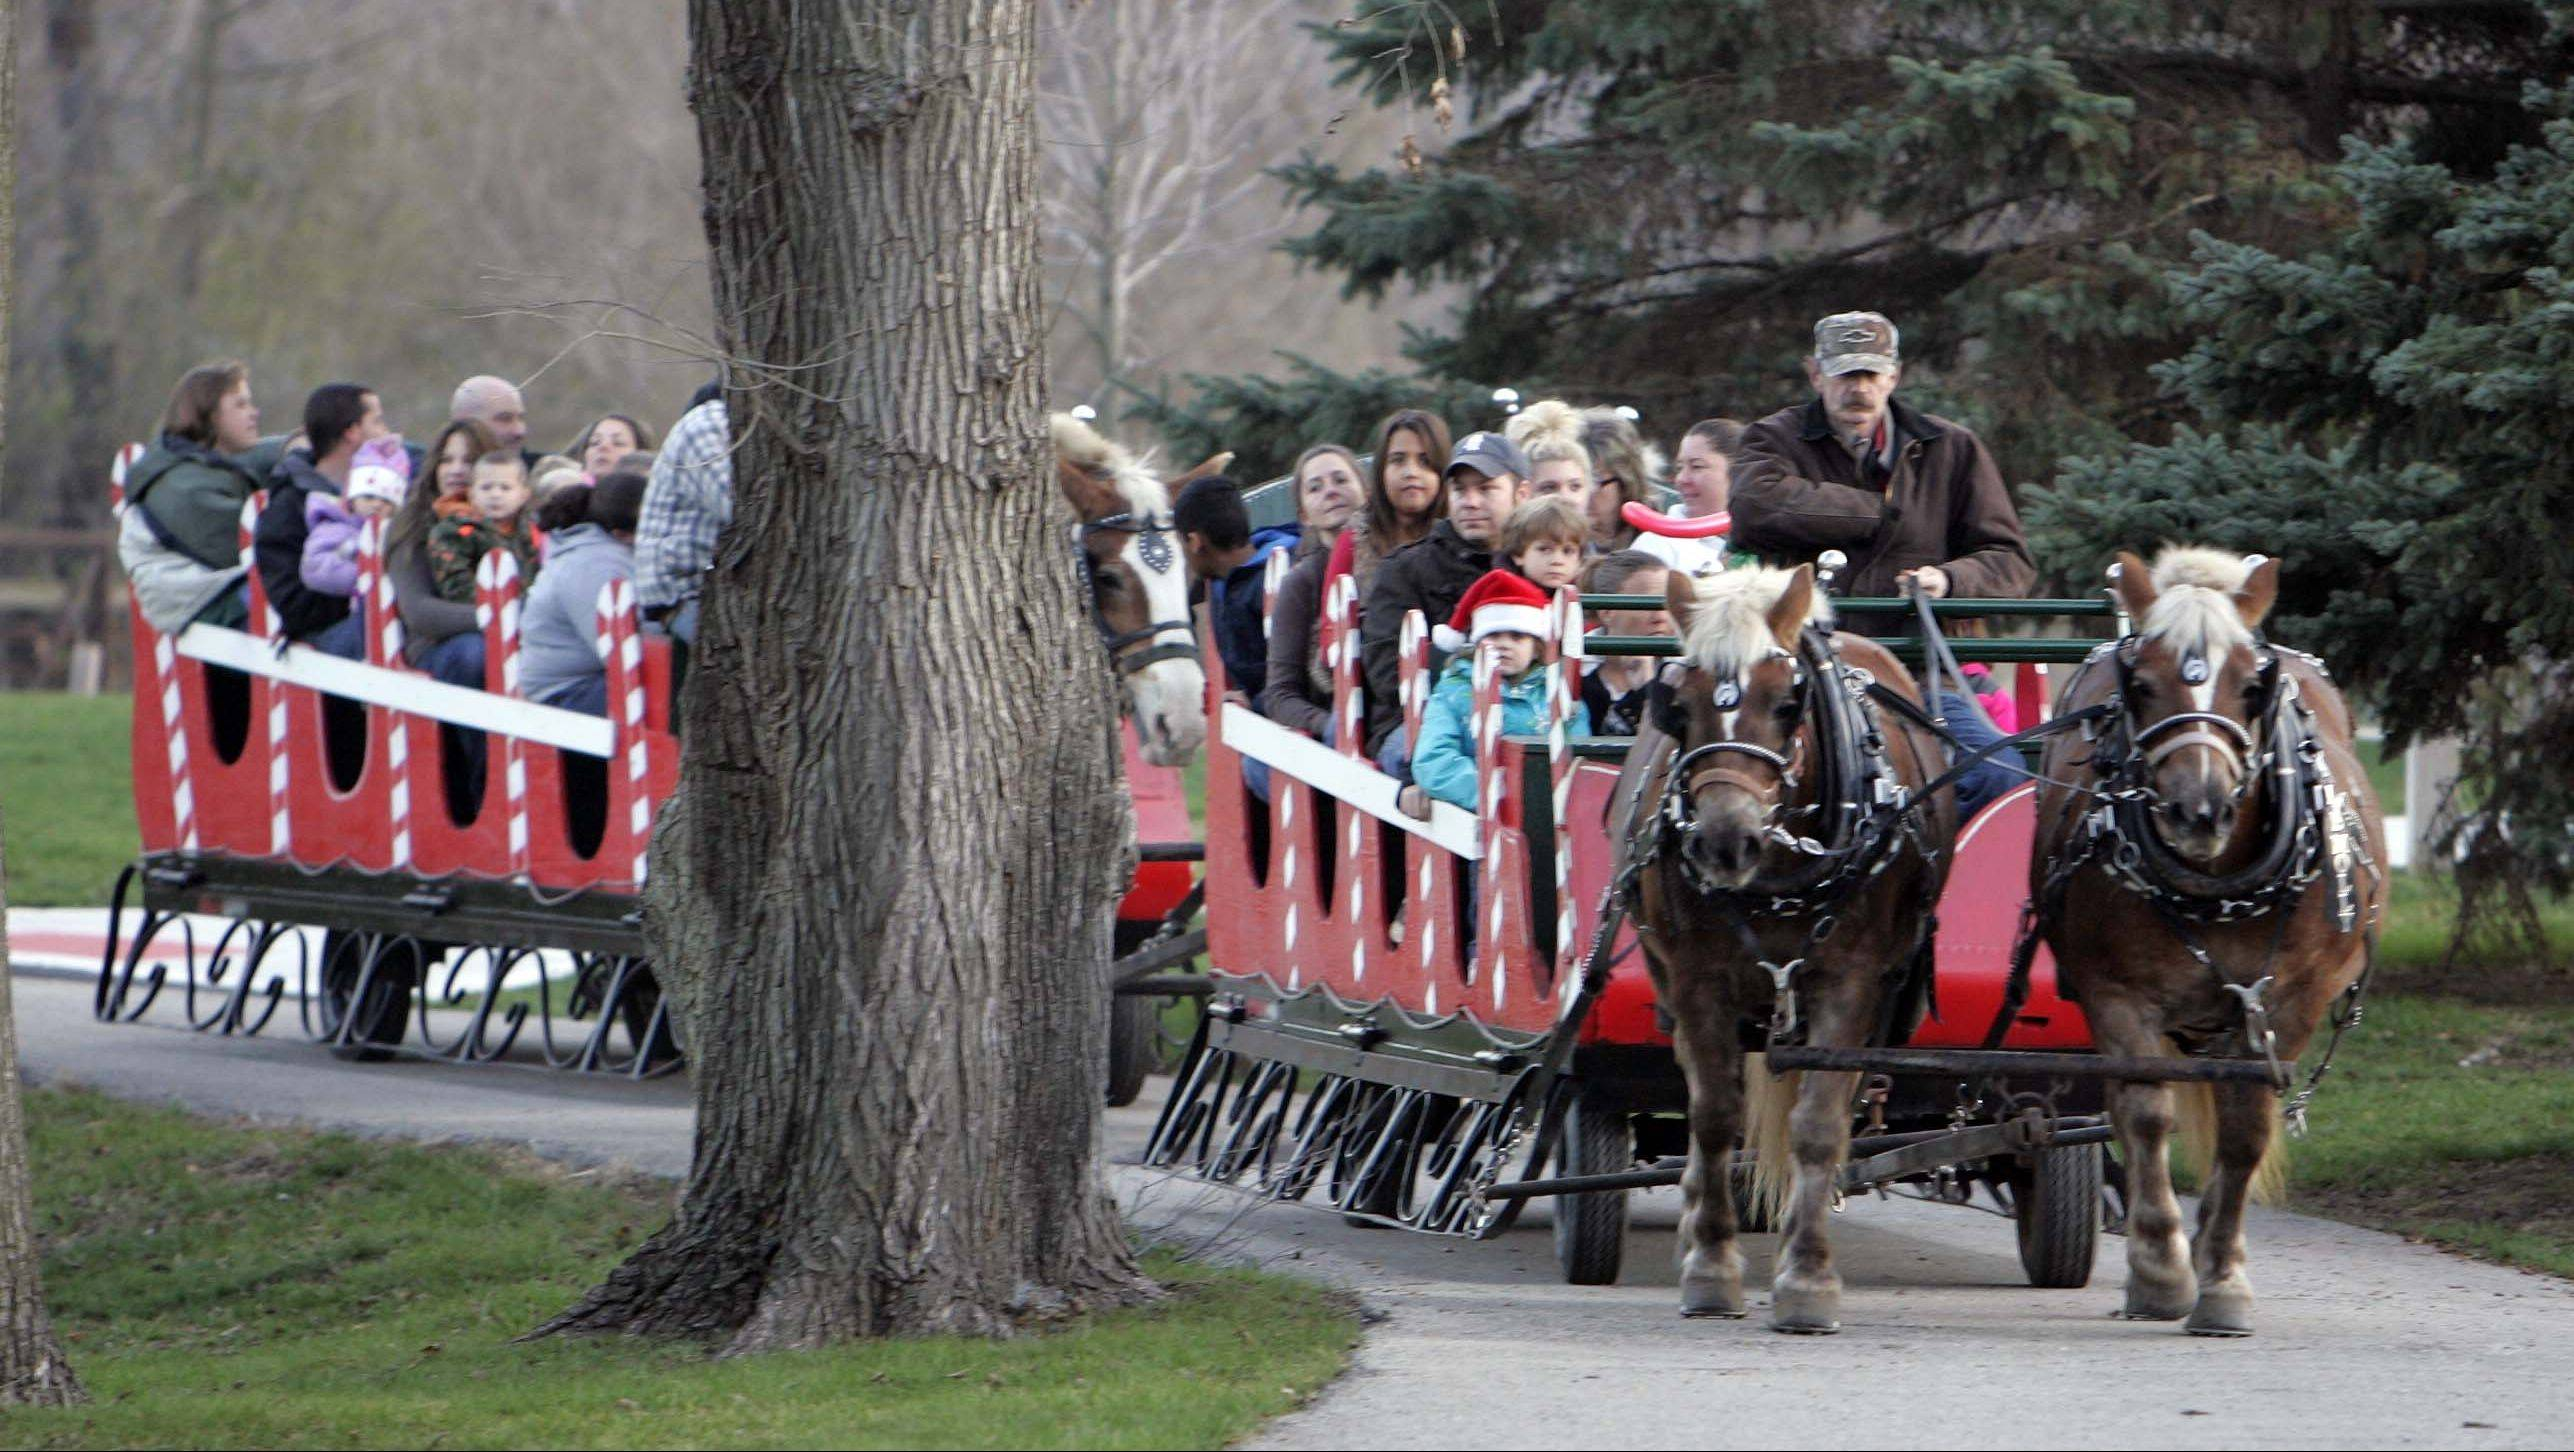 Sleigh rides wend through the park during An Almost Winter Day at SEBA Park in South Elgin.